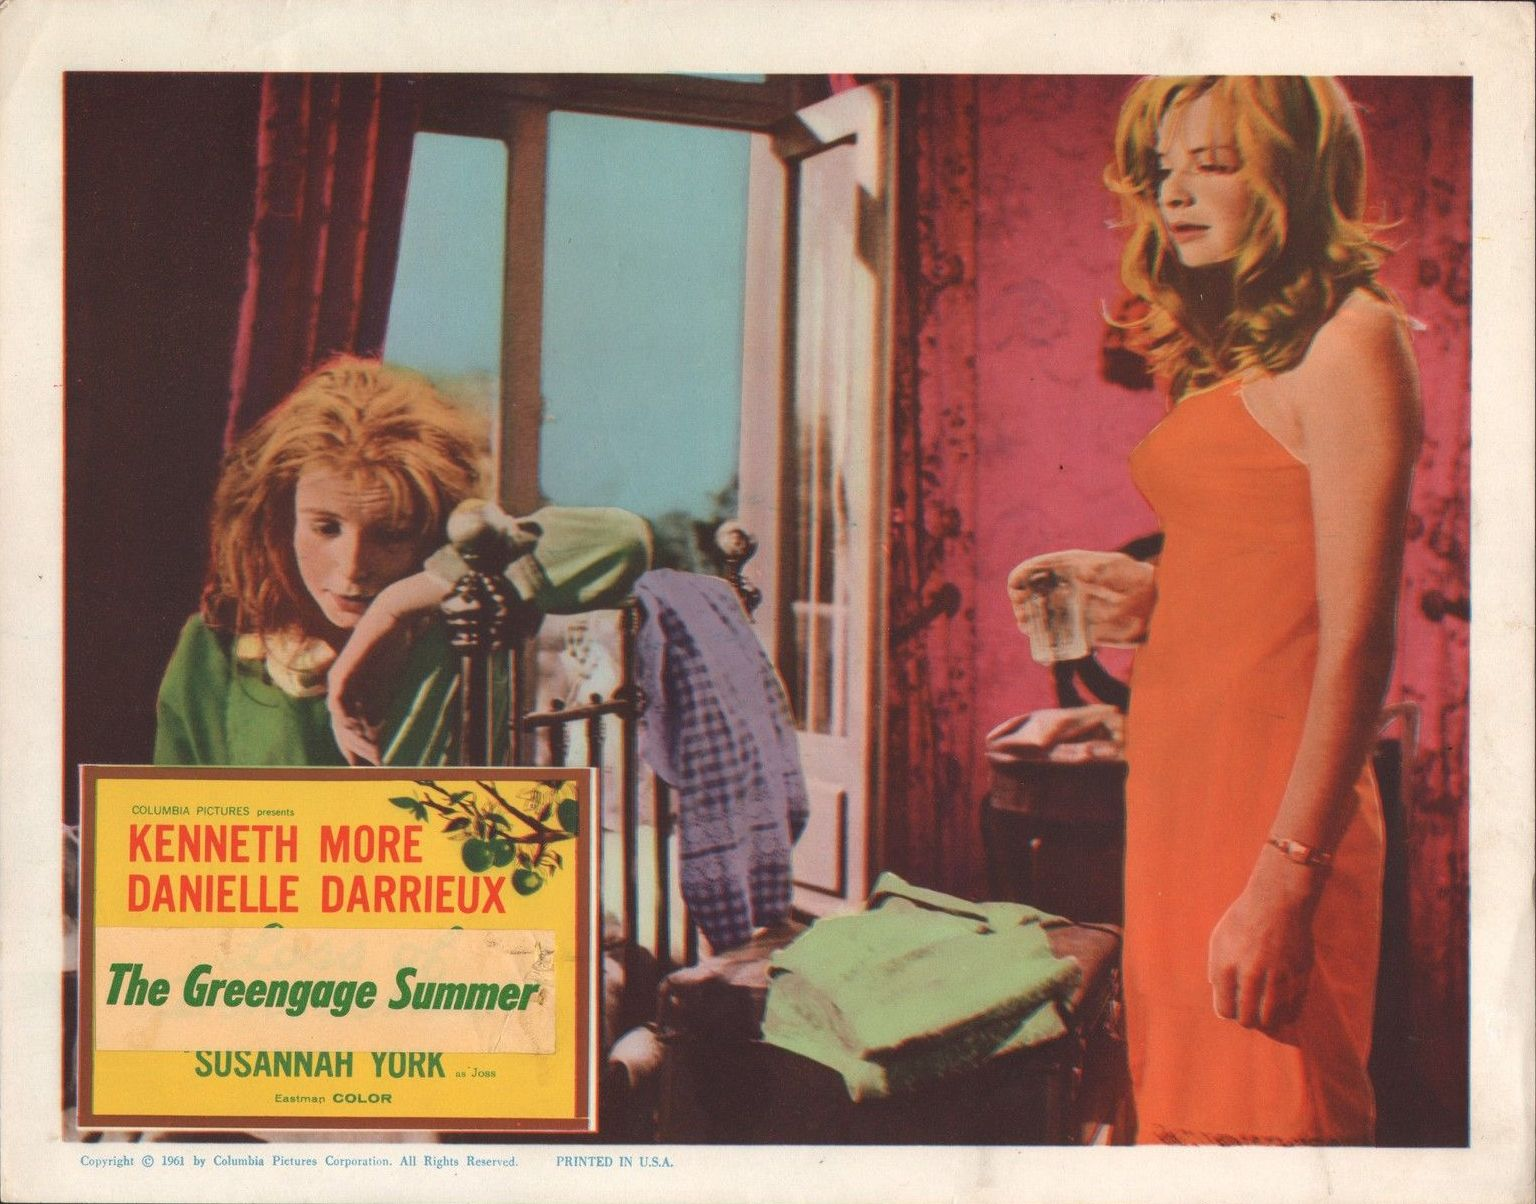 Jane Asher and Susannah York in The Greengage Summer (1961)